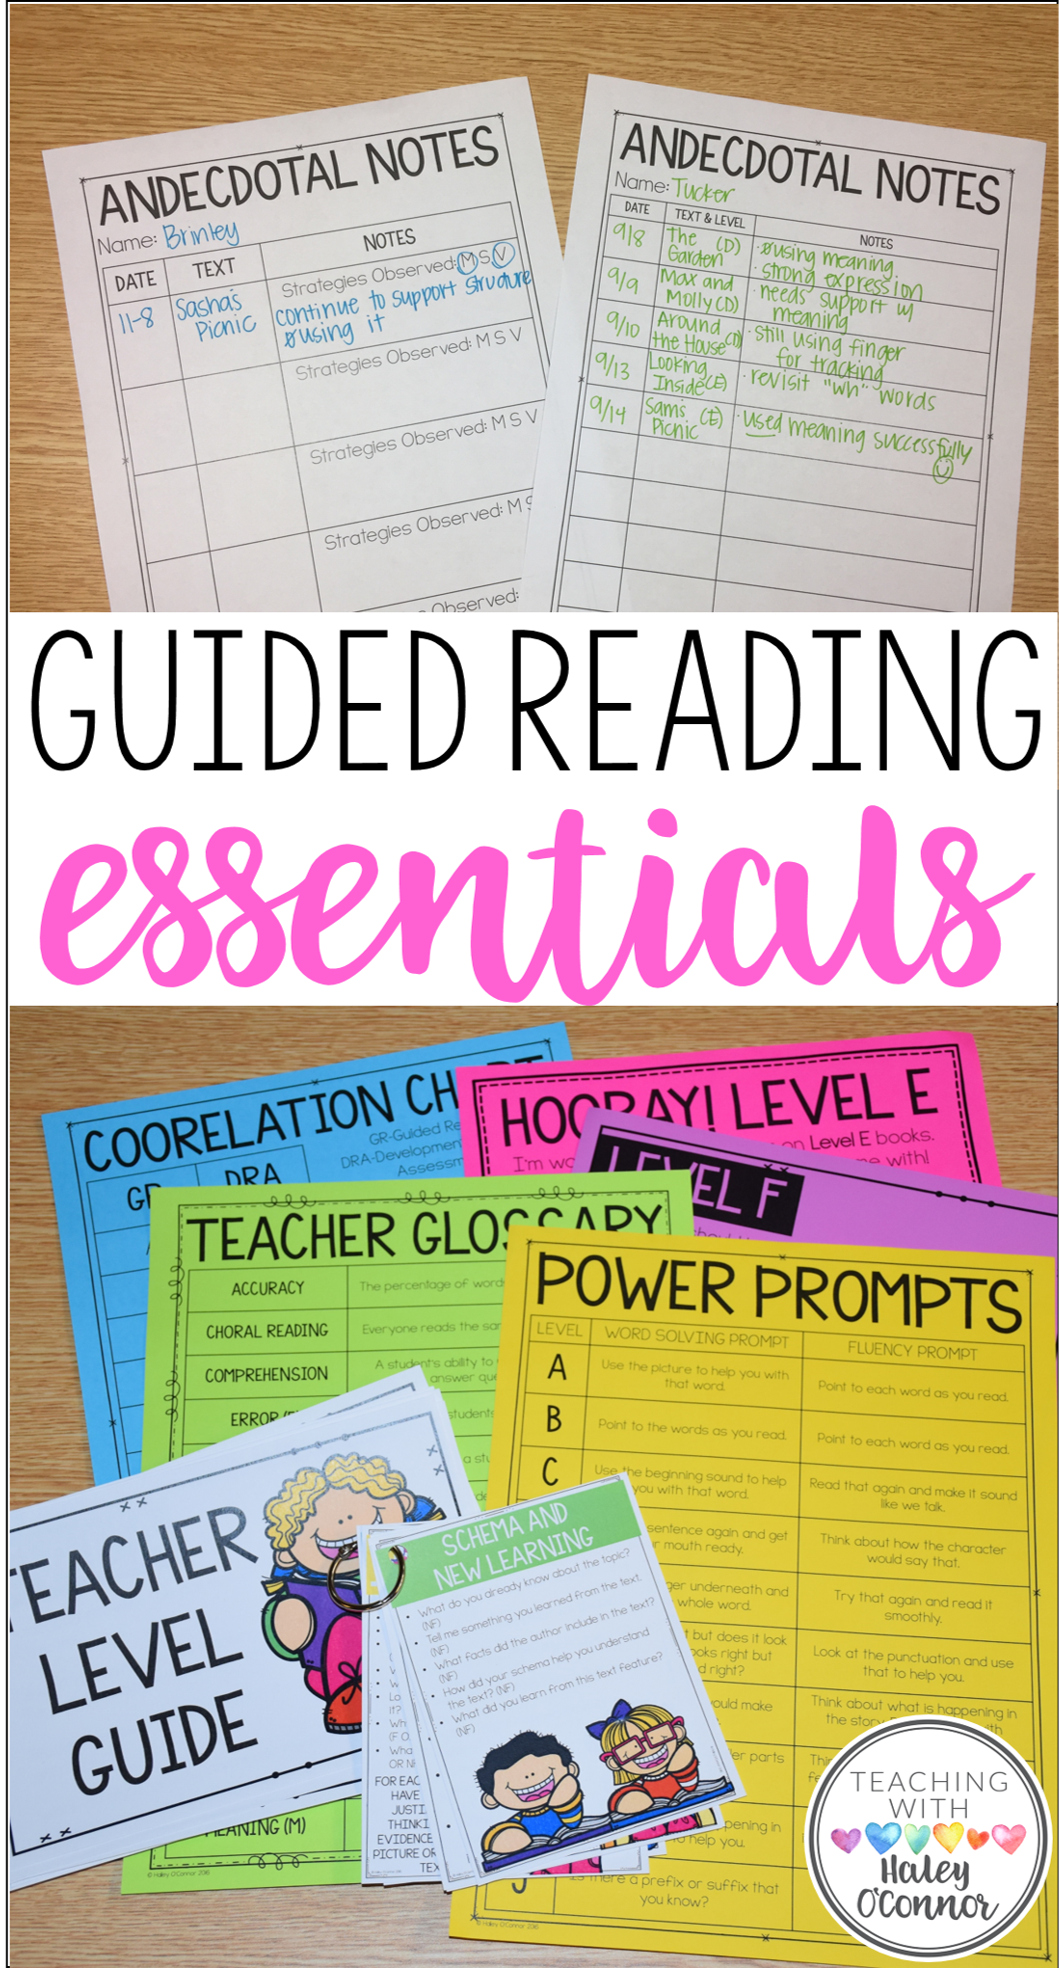 Guided Reading Resources for Teachers